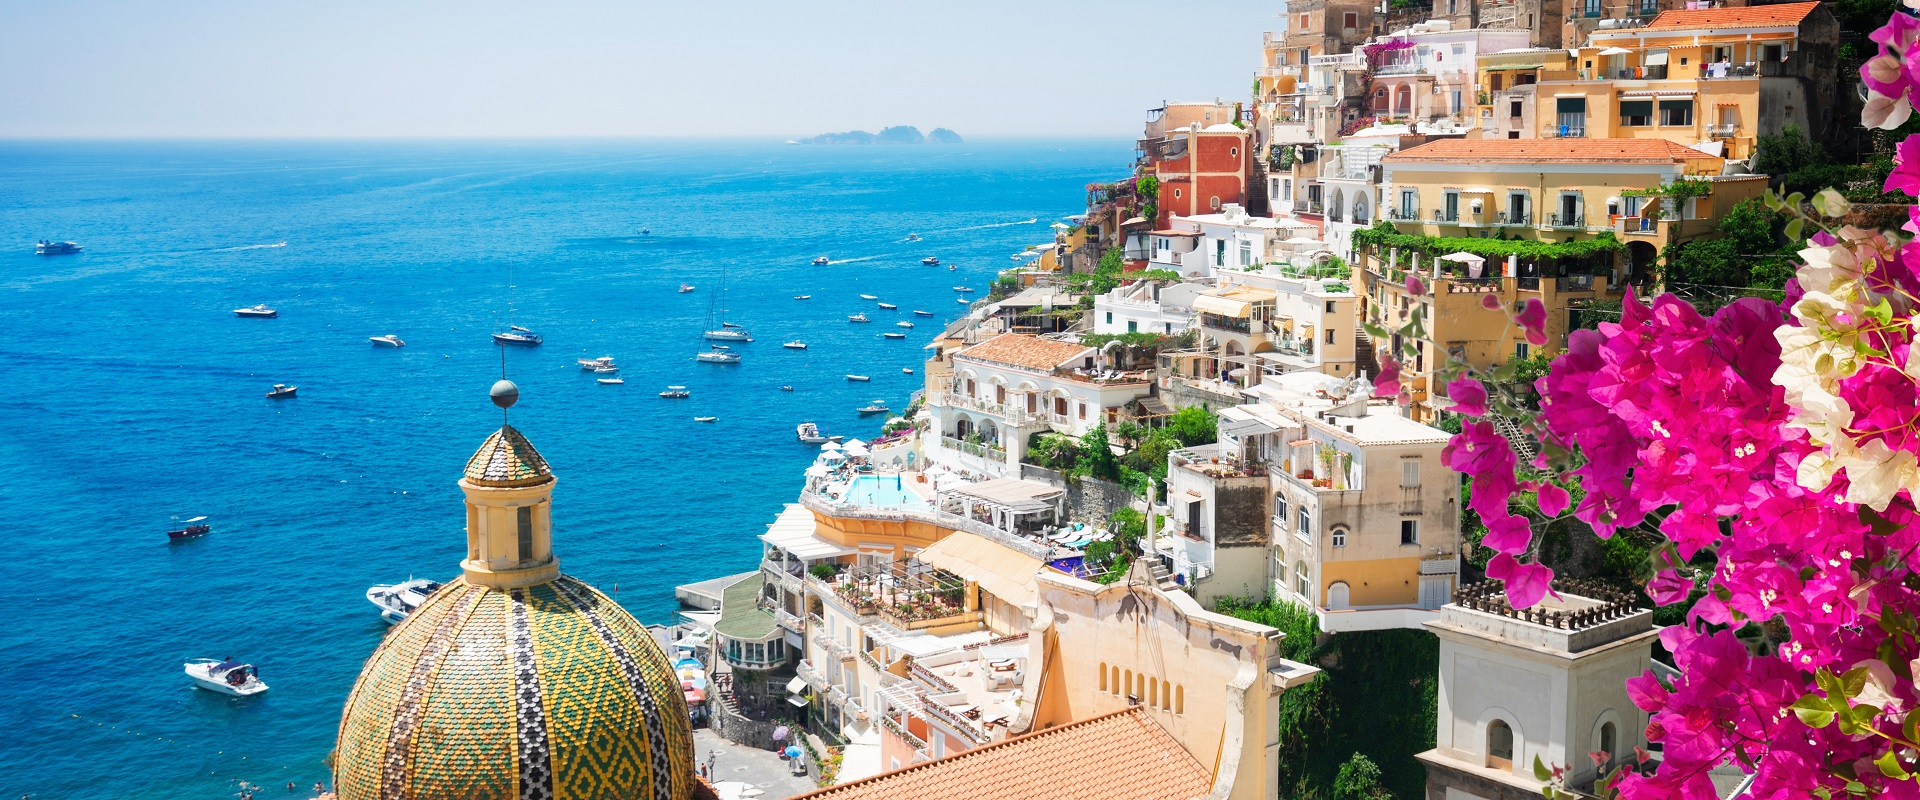 Touring the village of Positano, Italy.